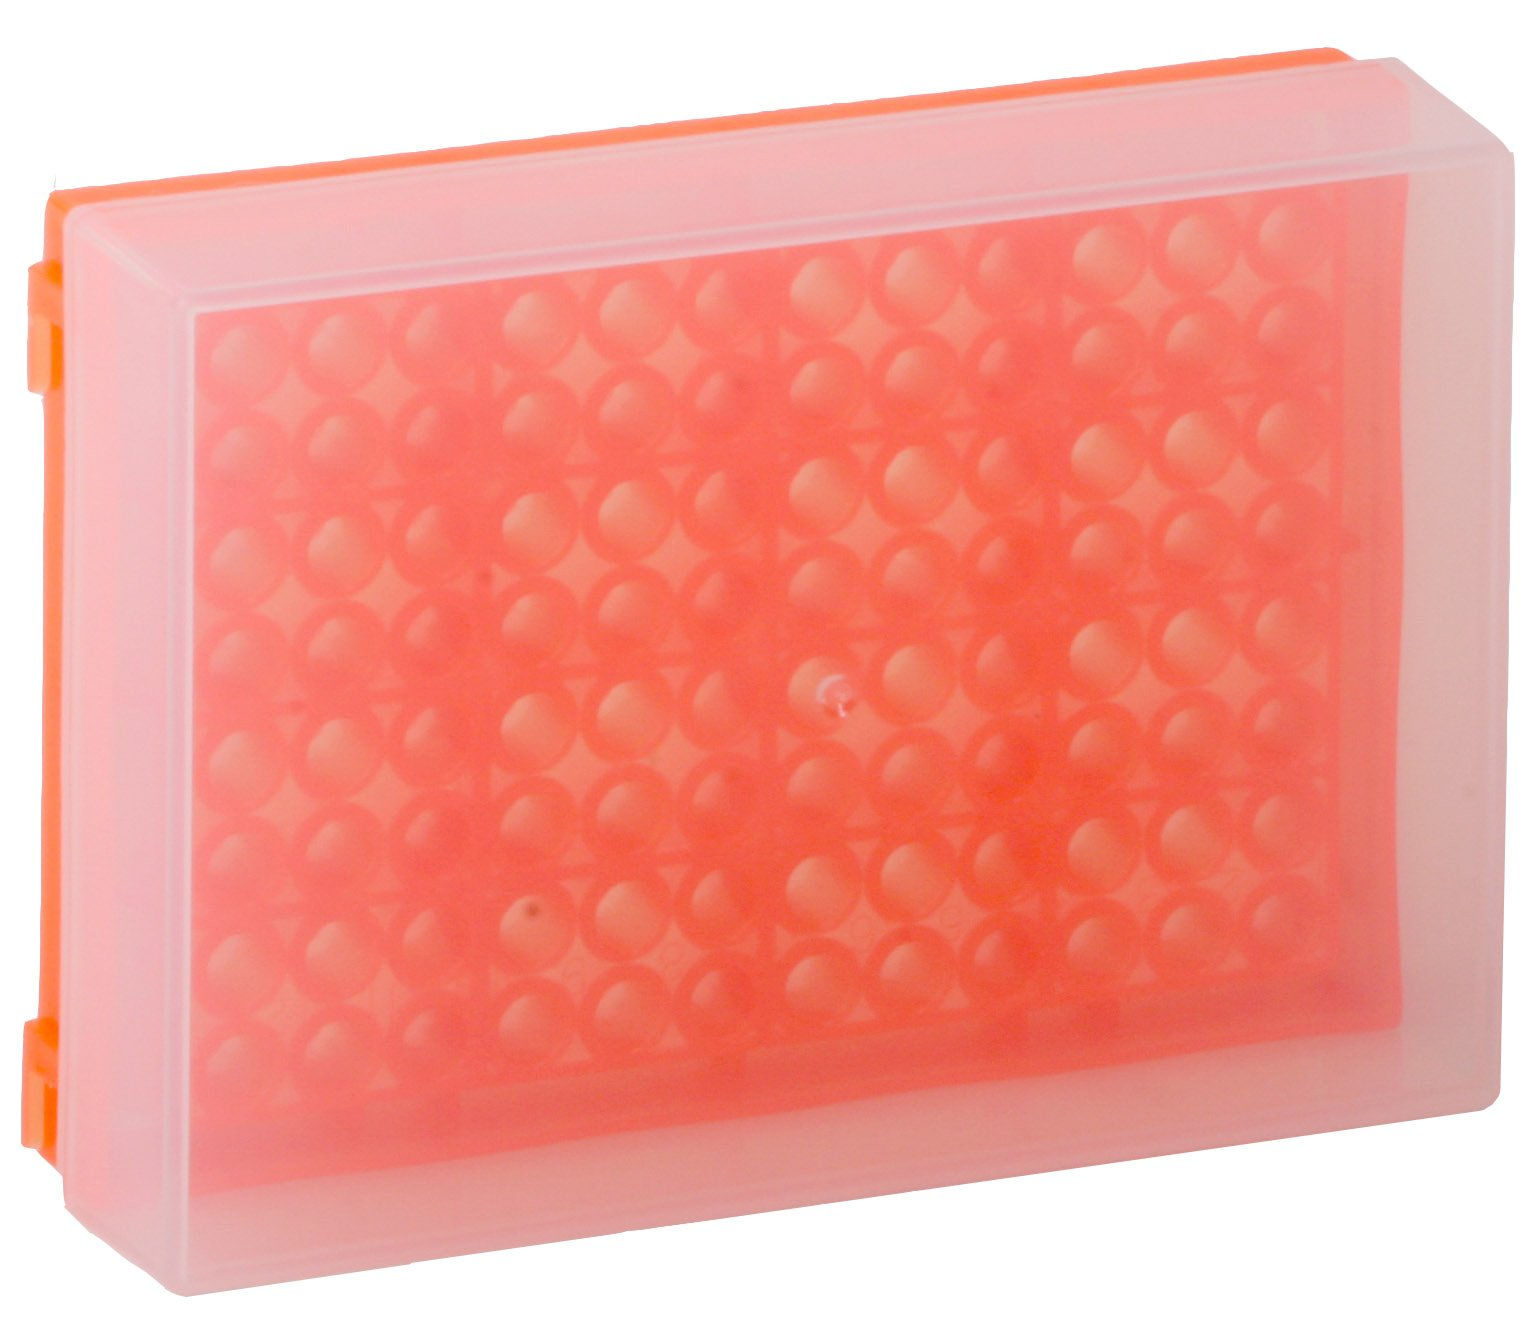 96-Well Preparation Rack with Cover - Fluorescent Orange